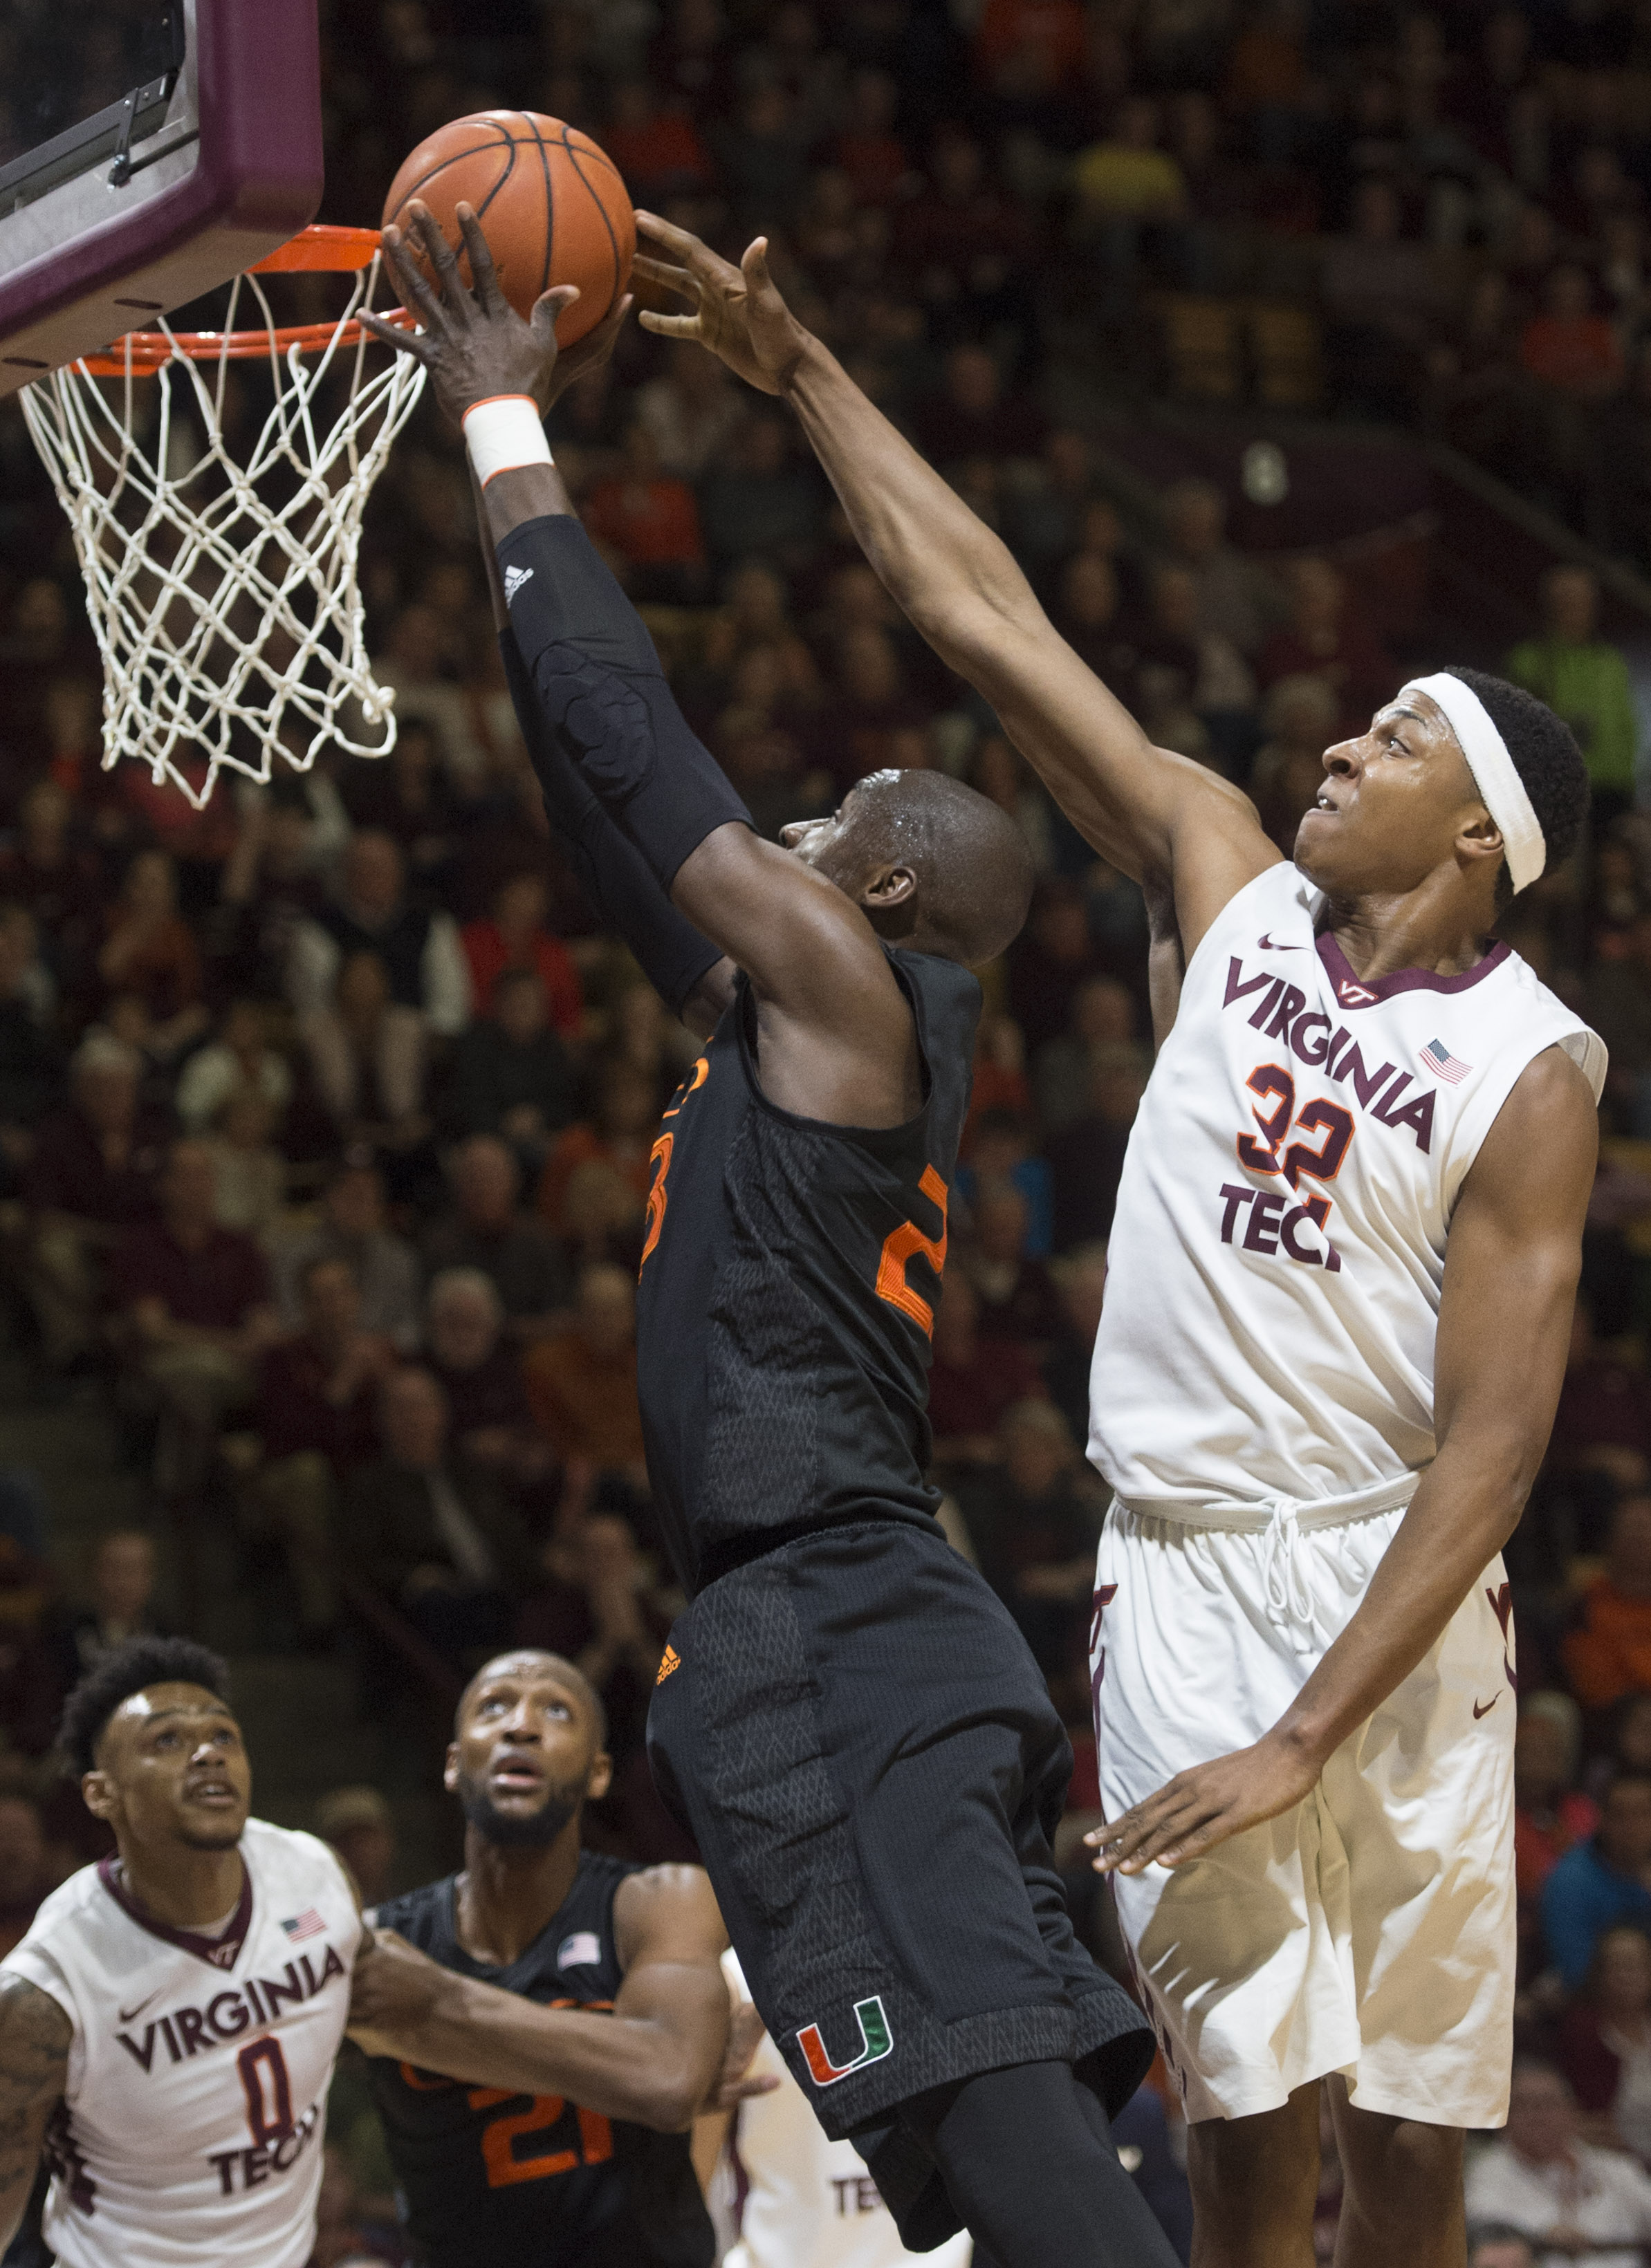 Miami's Tonye Jekiri, left, goes up for a basket against  Virginia Tech's  Zach LeDay during the first half of an NCAA college basketball game Saturday, March 5, 2016, in Blacksburg, Va. (AP Photo/Don Petersen)